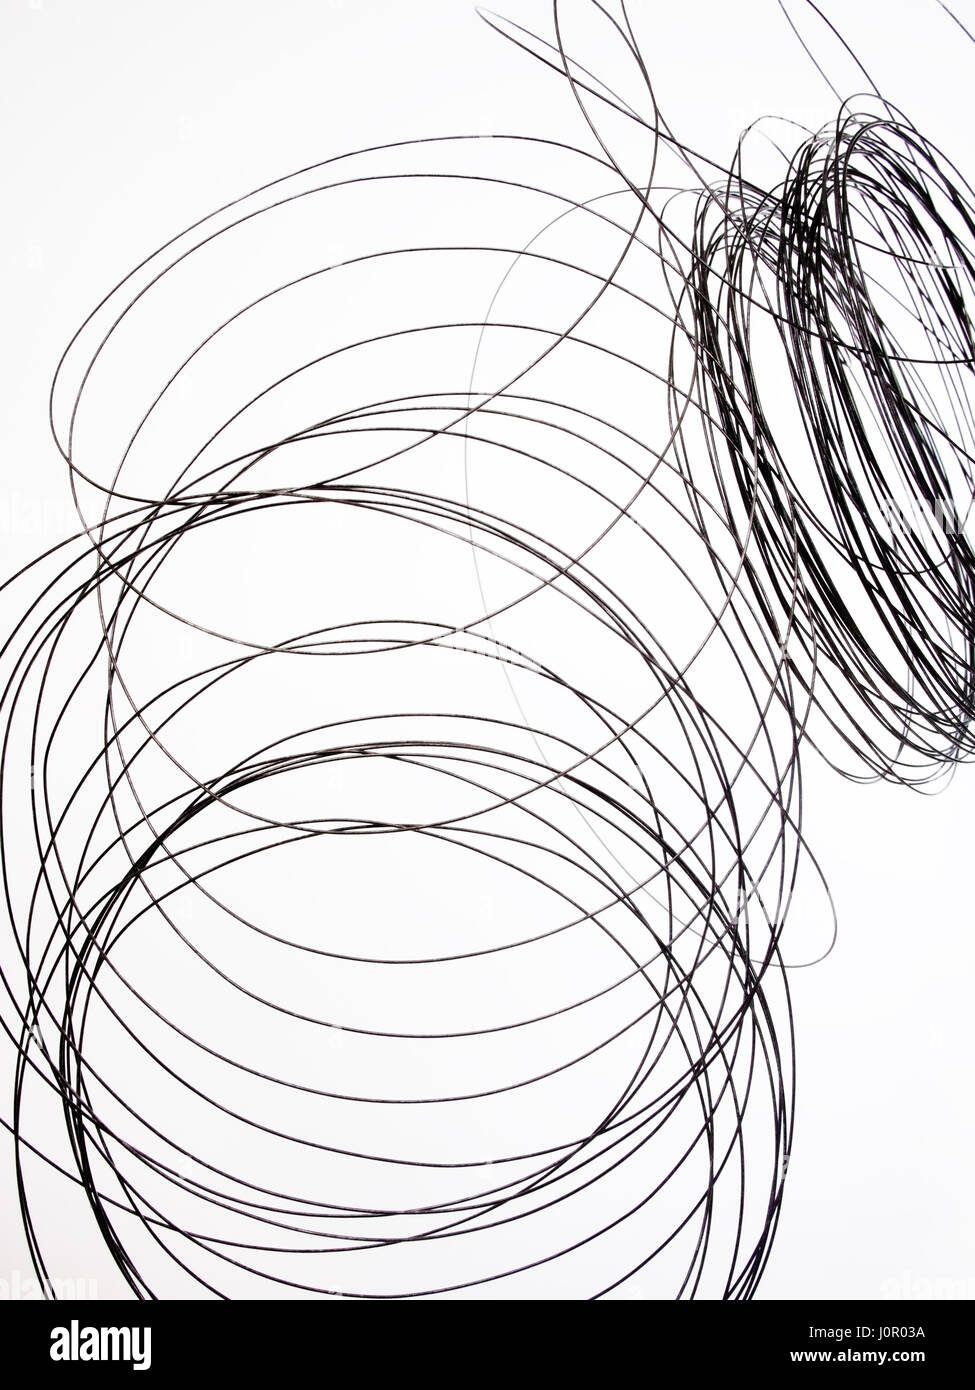 Tangled thin wire. On white background. - Stock Image